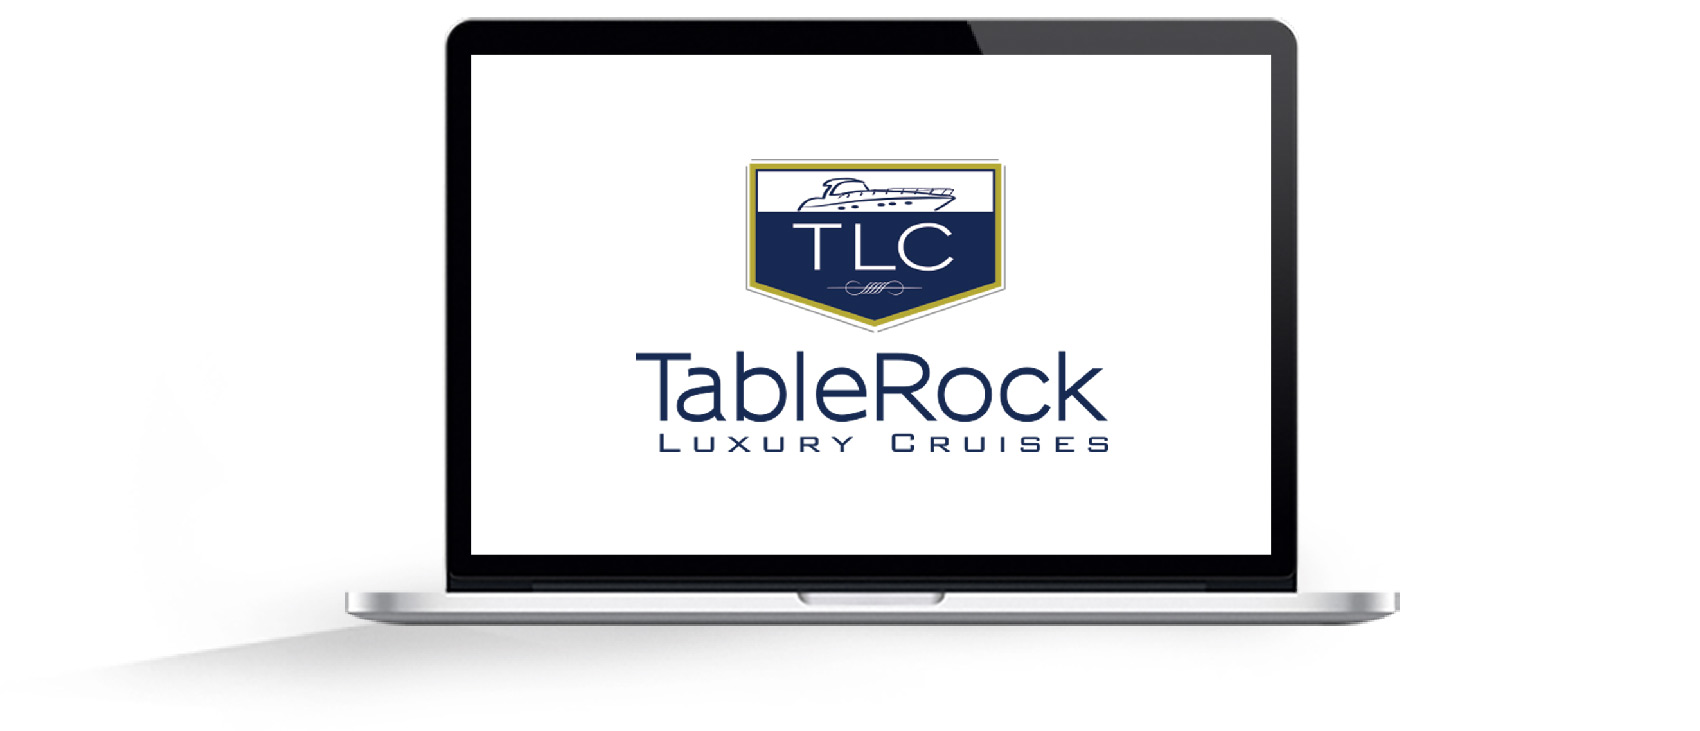 tablerock luxury cruises logo